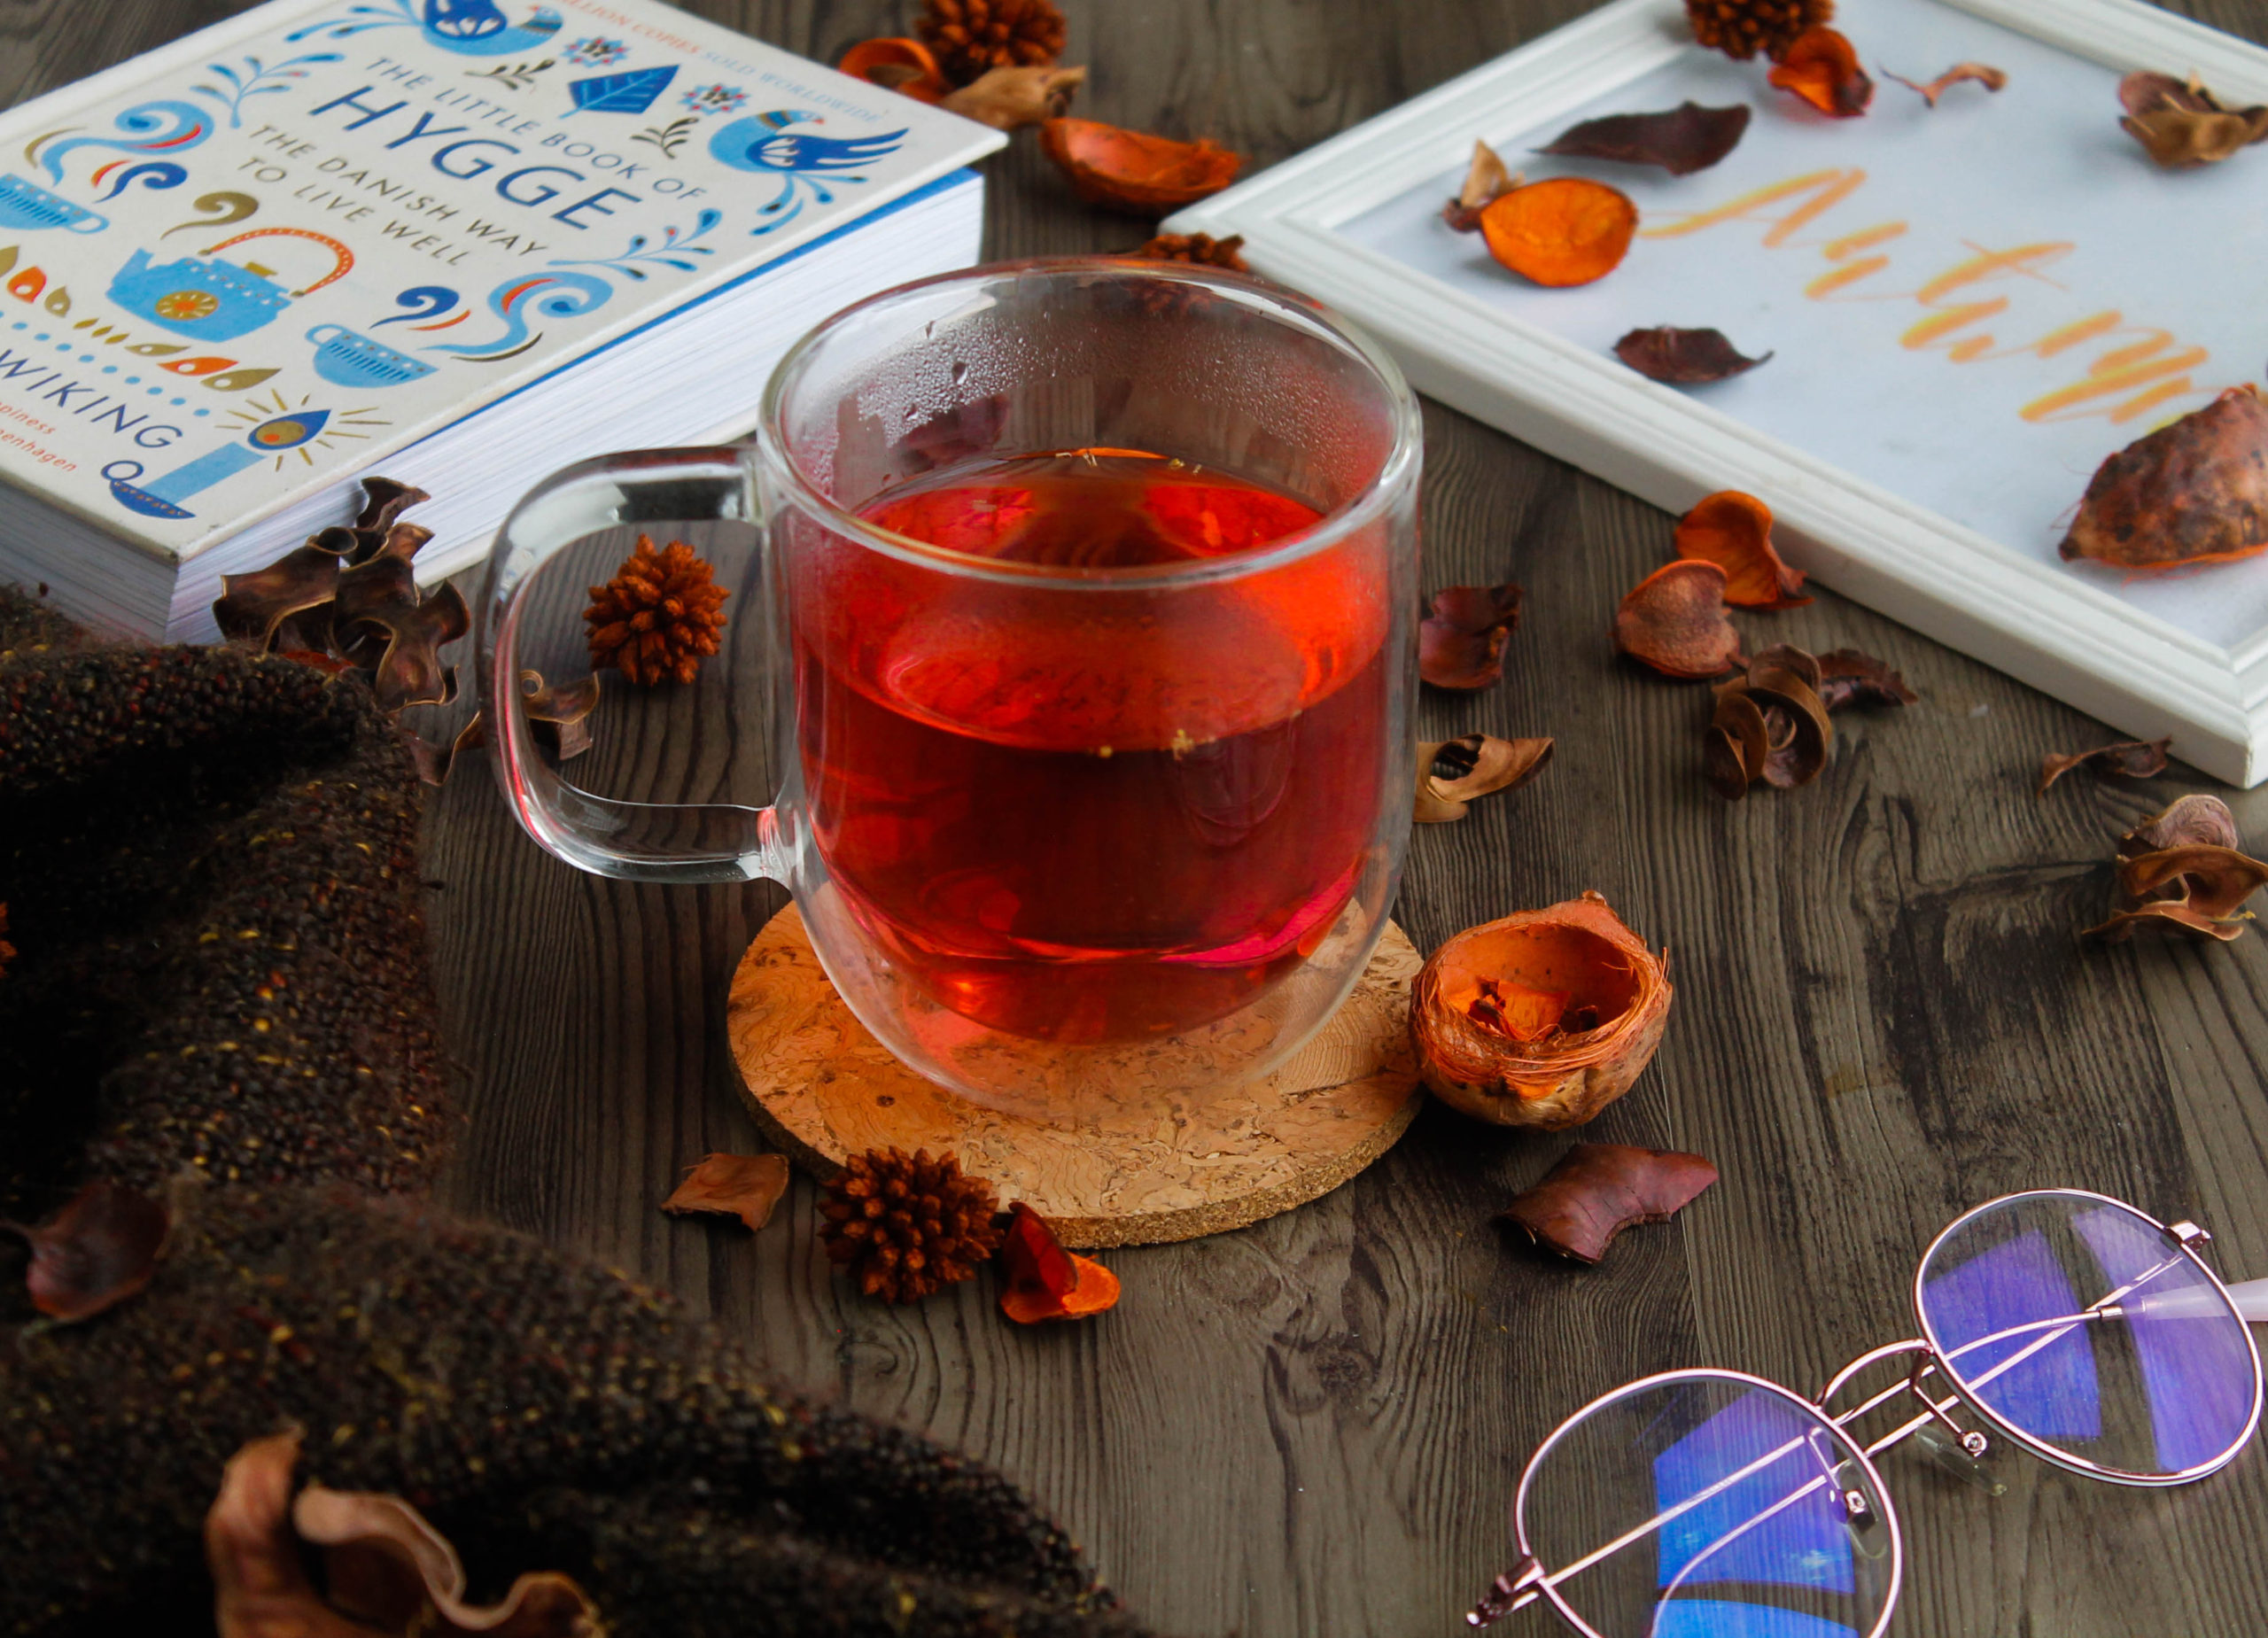 Tea 4 thought |  Stress and reaching out to others